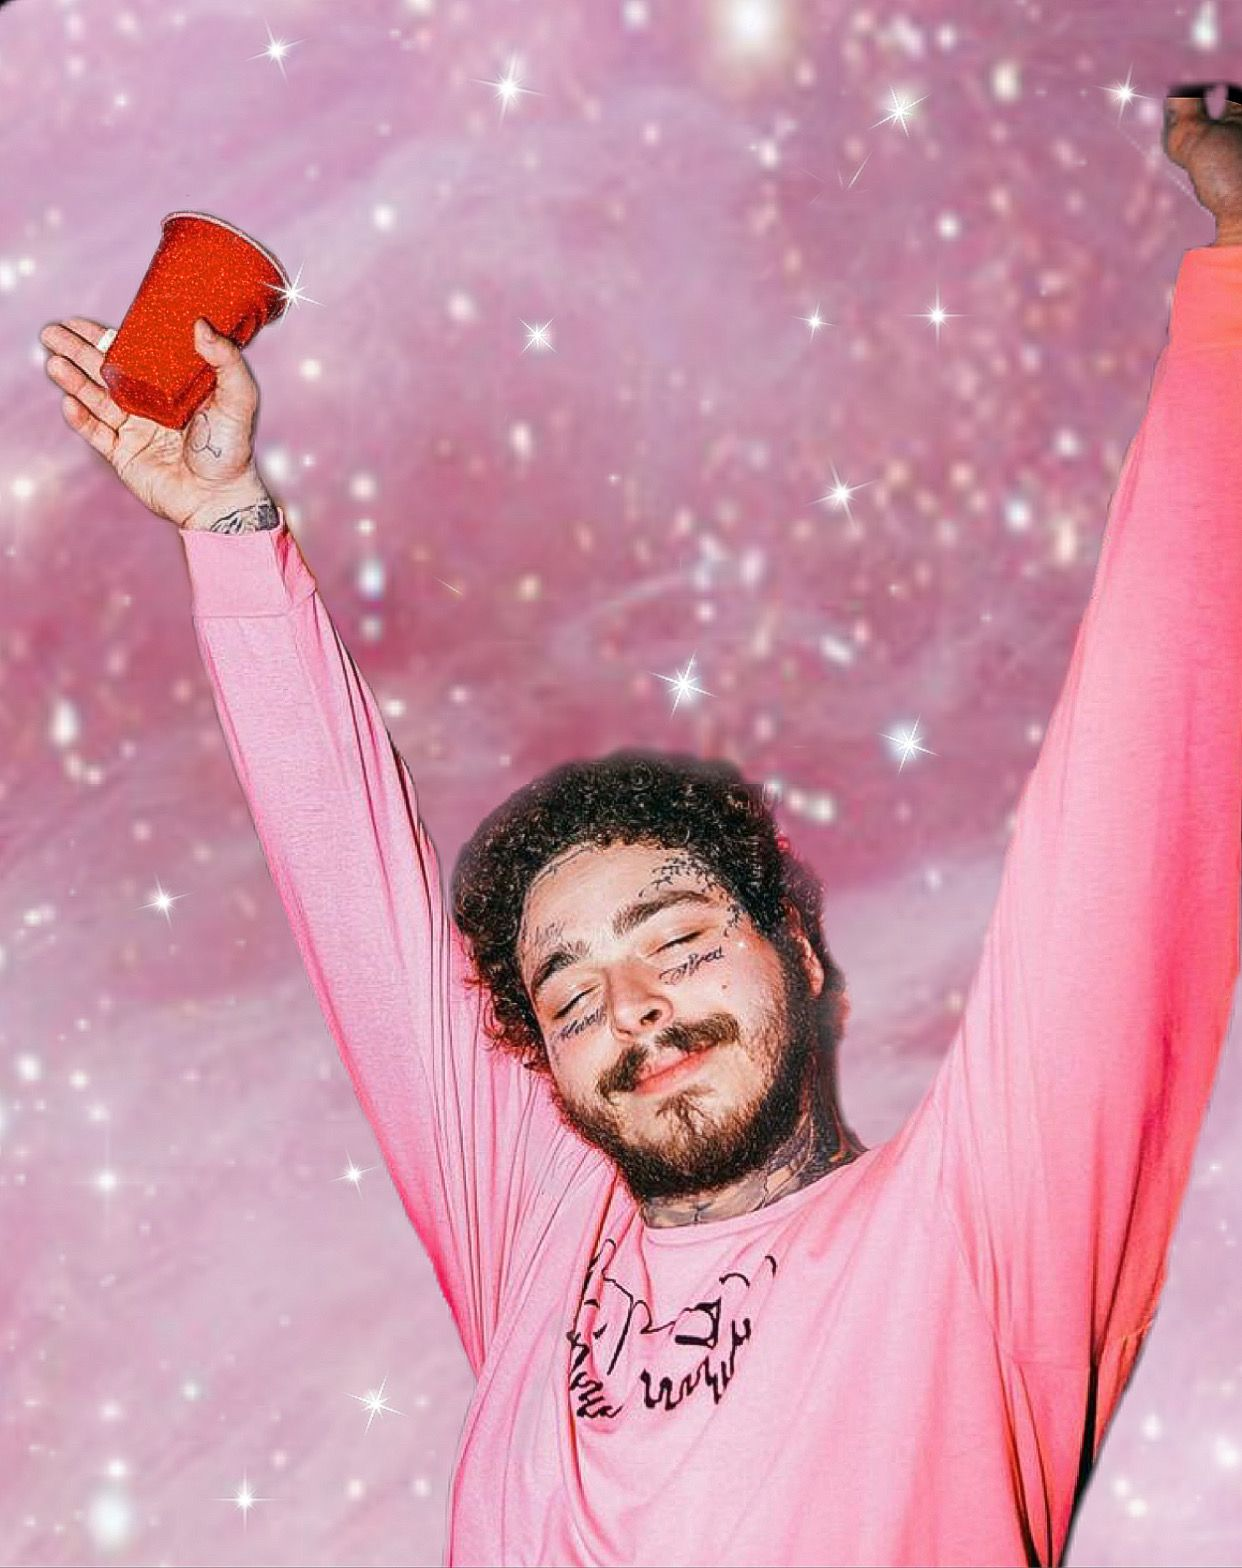 Post Malone Iphone Wallpaper Post Malone Wallpaper Art Collage Wall Photo Wall Collage